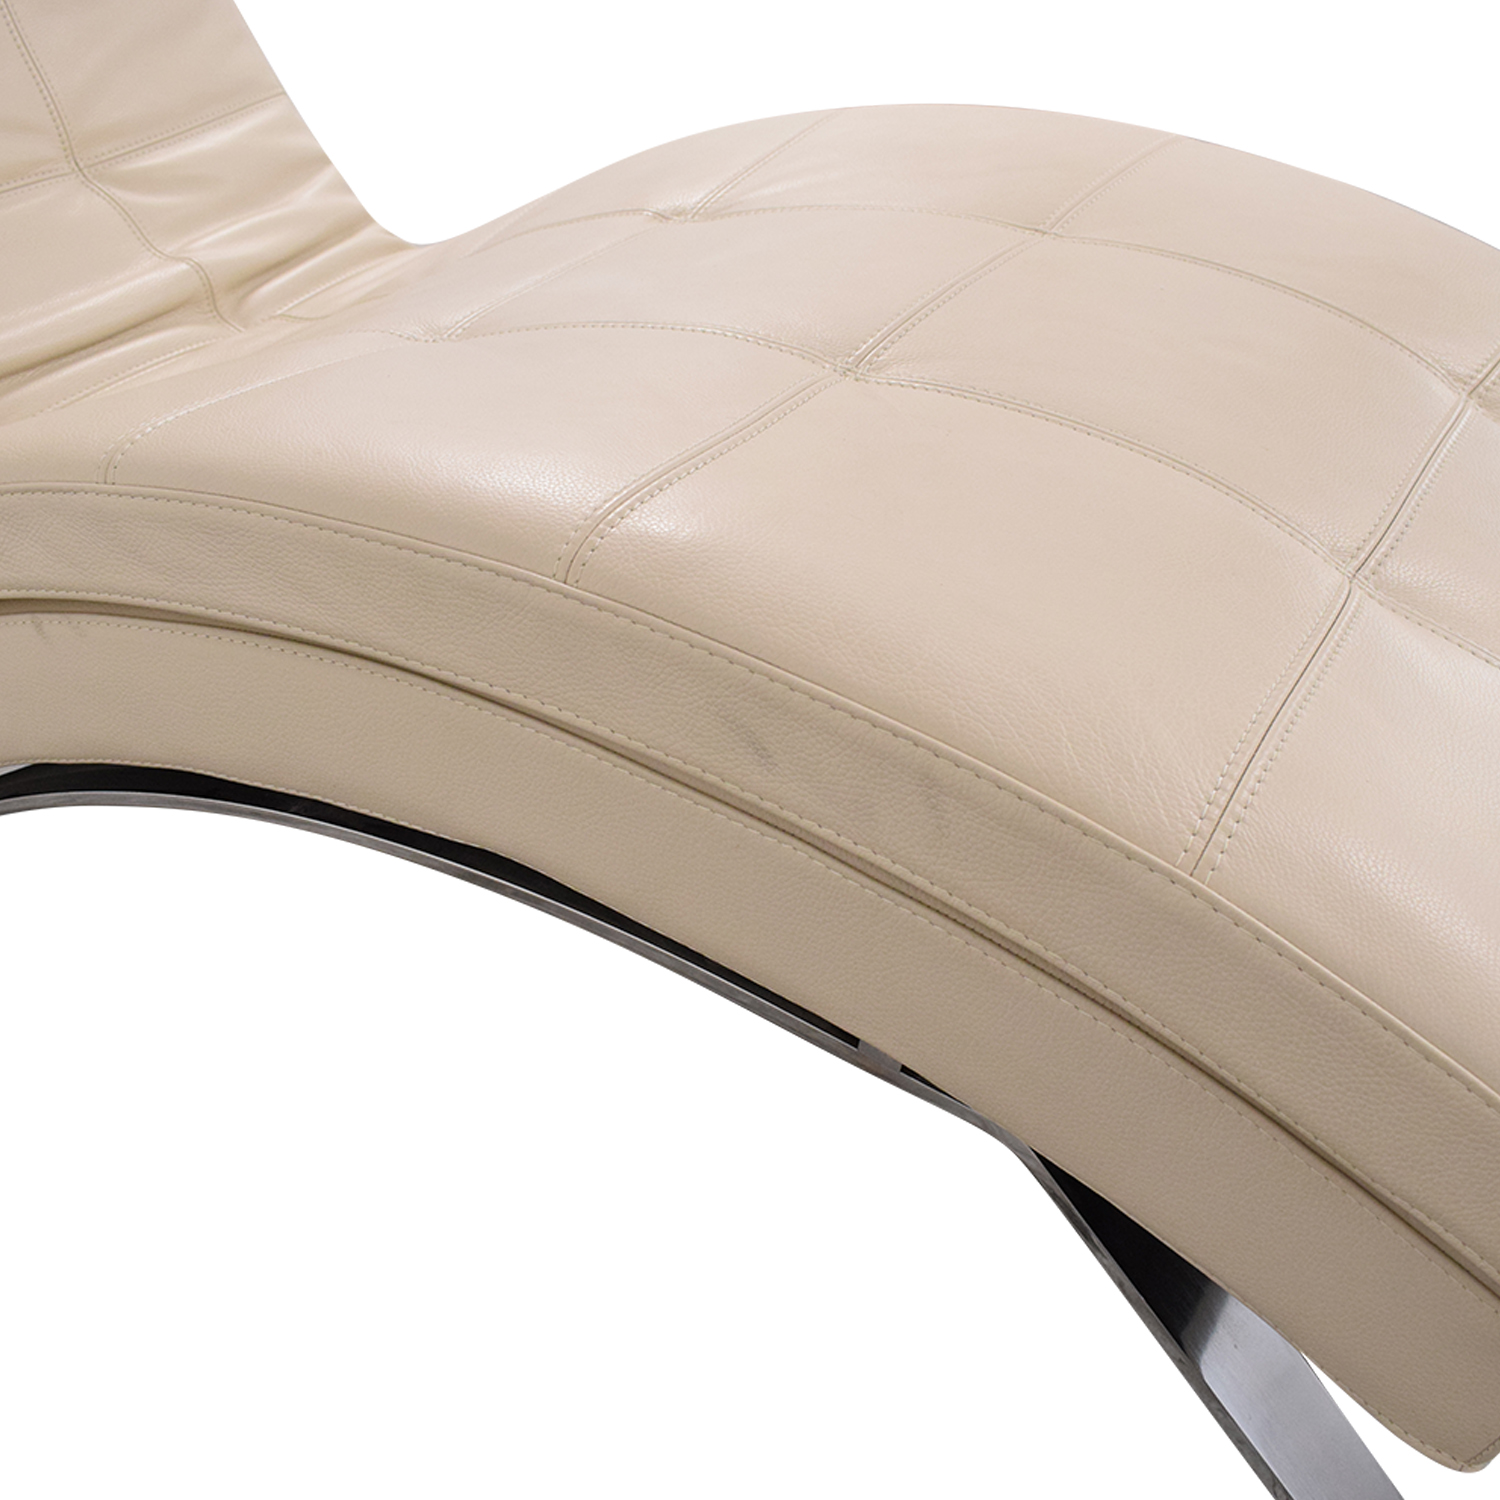 Lind 903 Recliner Armless Long Chaise sale